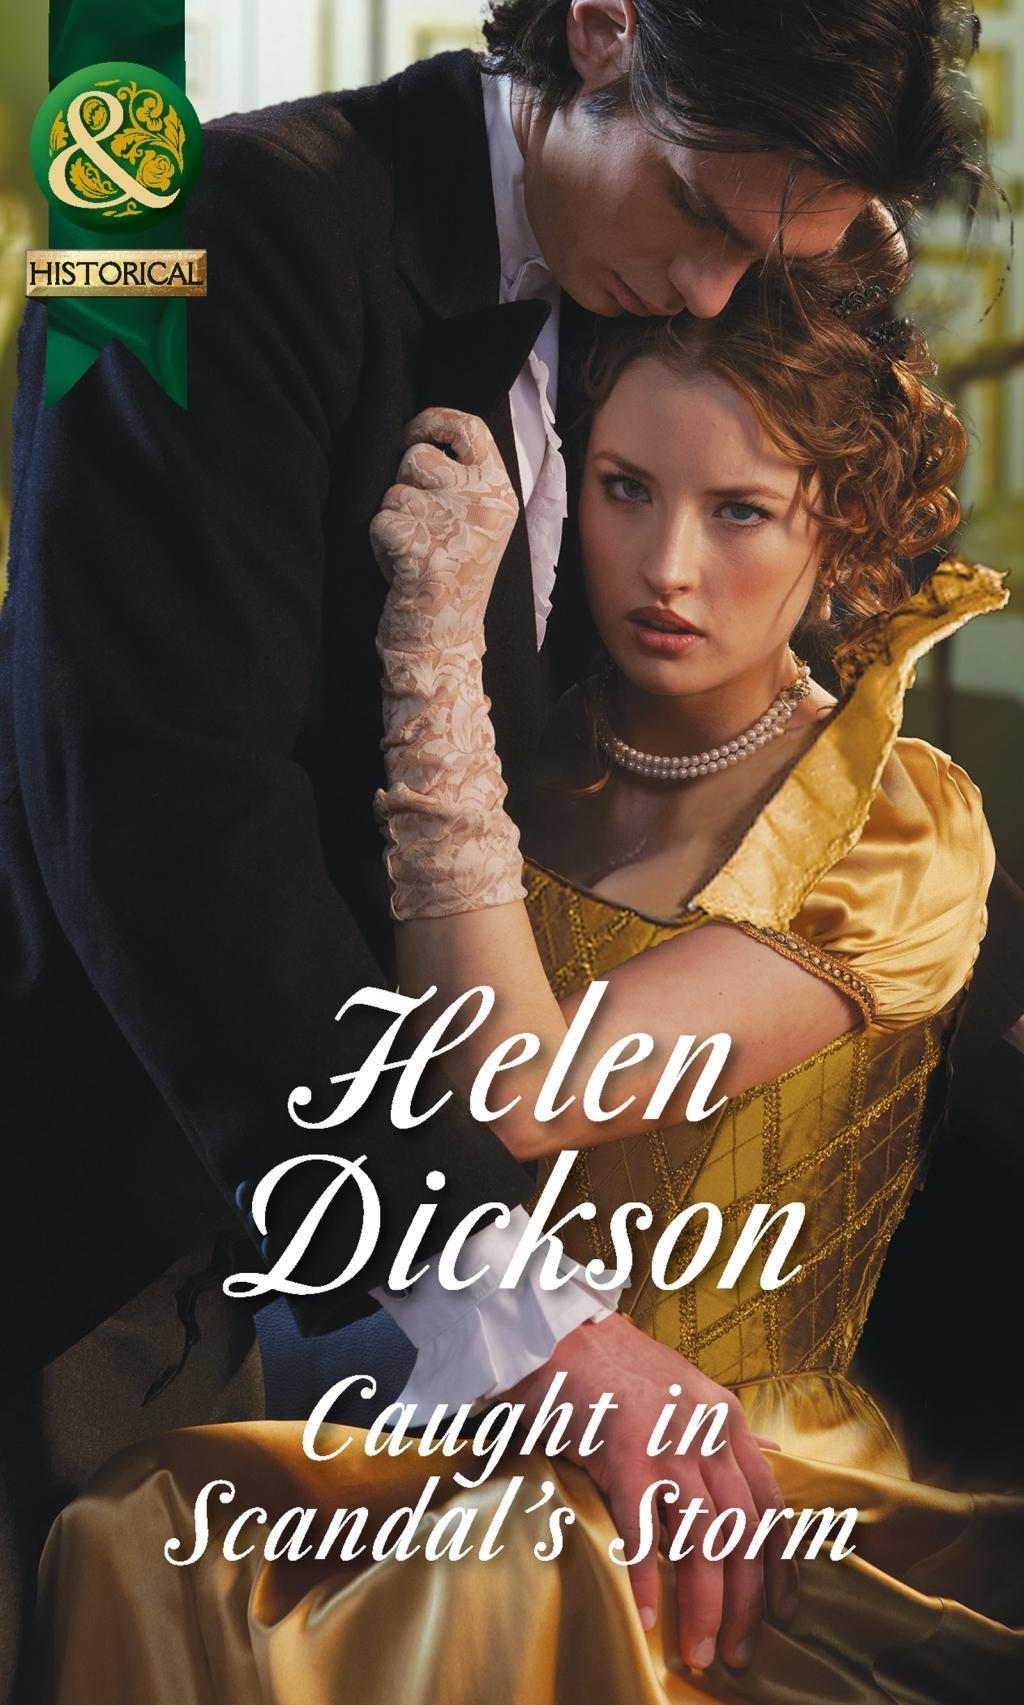 Caught in Scandal's Storm (Mills & Boon Historical)